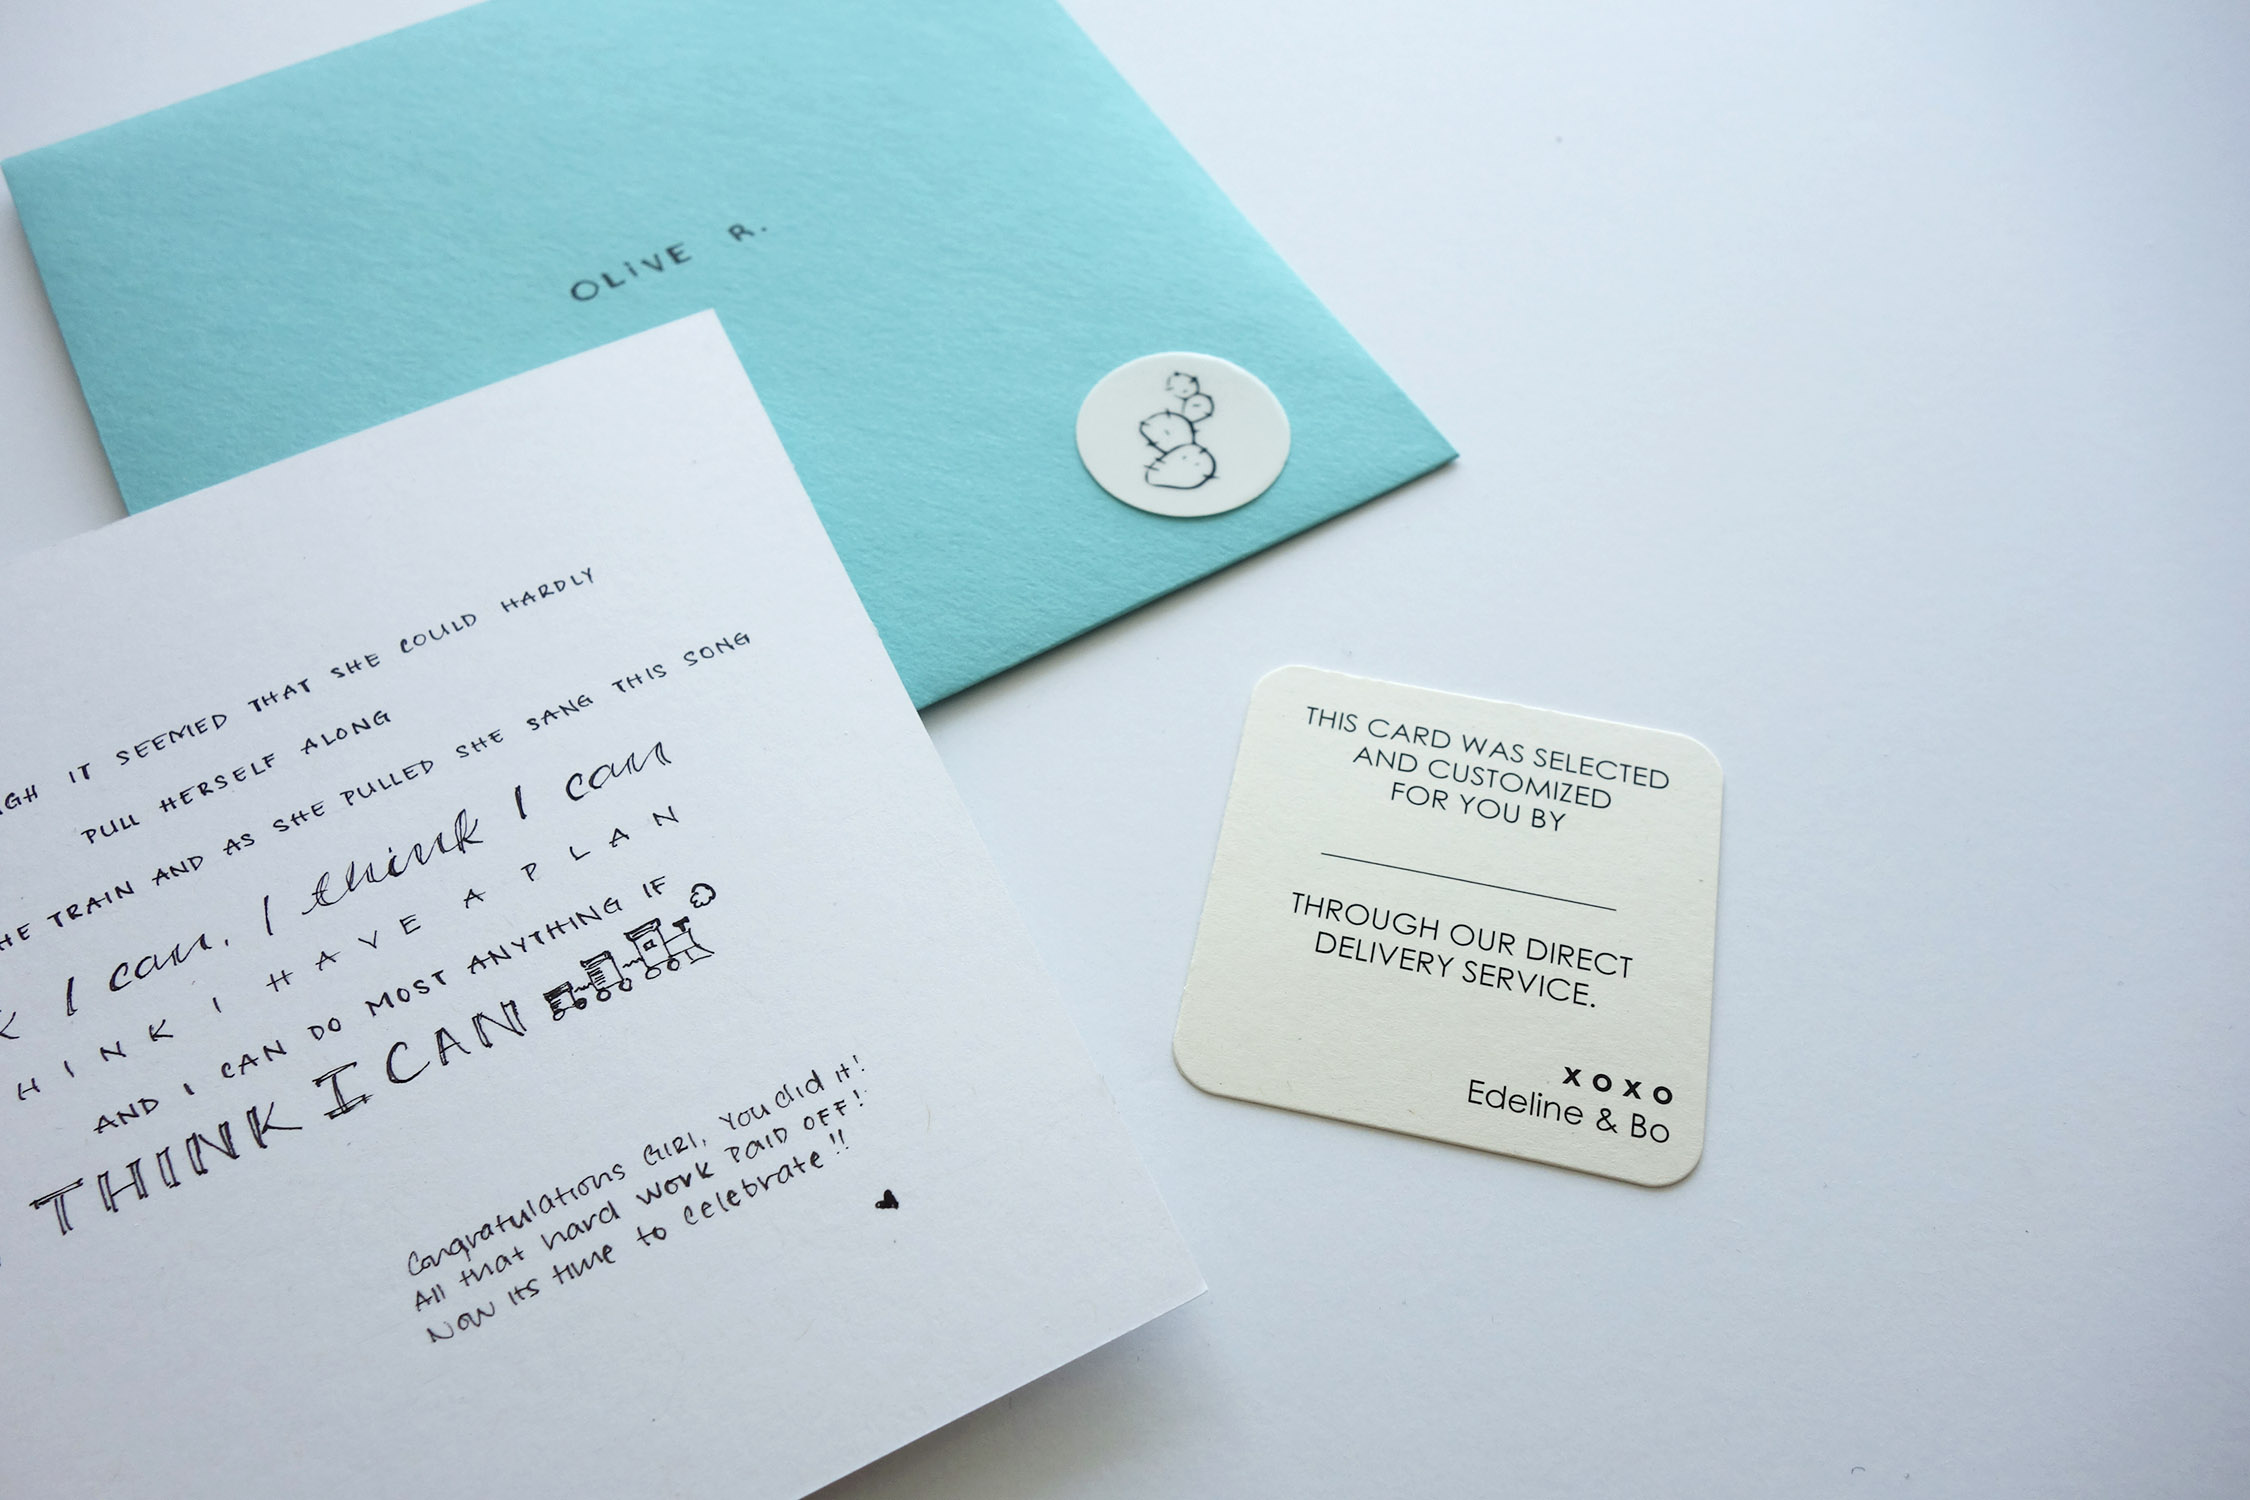 A direct delivery tag lets your recipient know the card is from you.